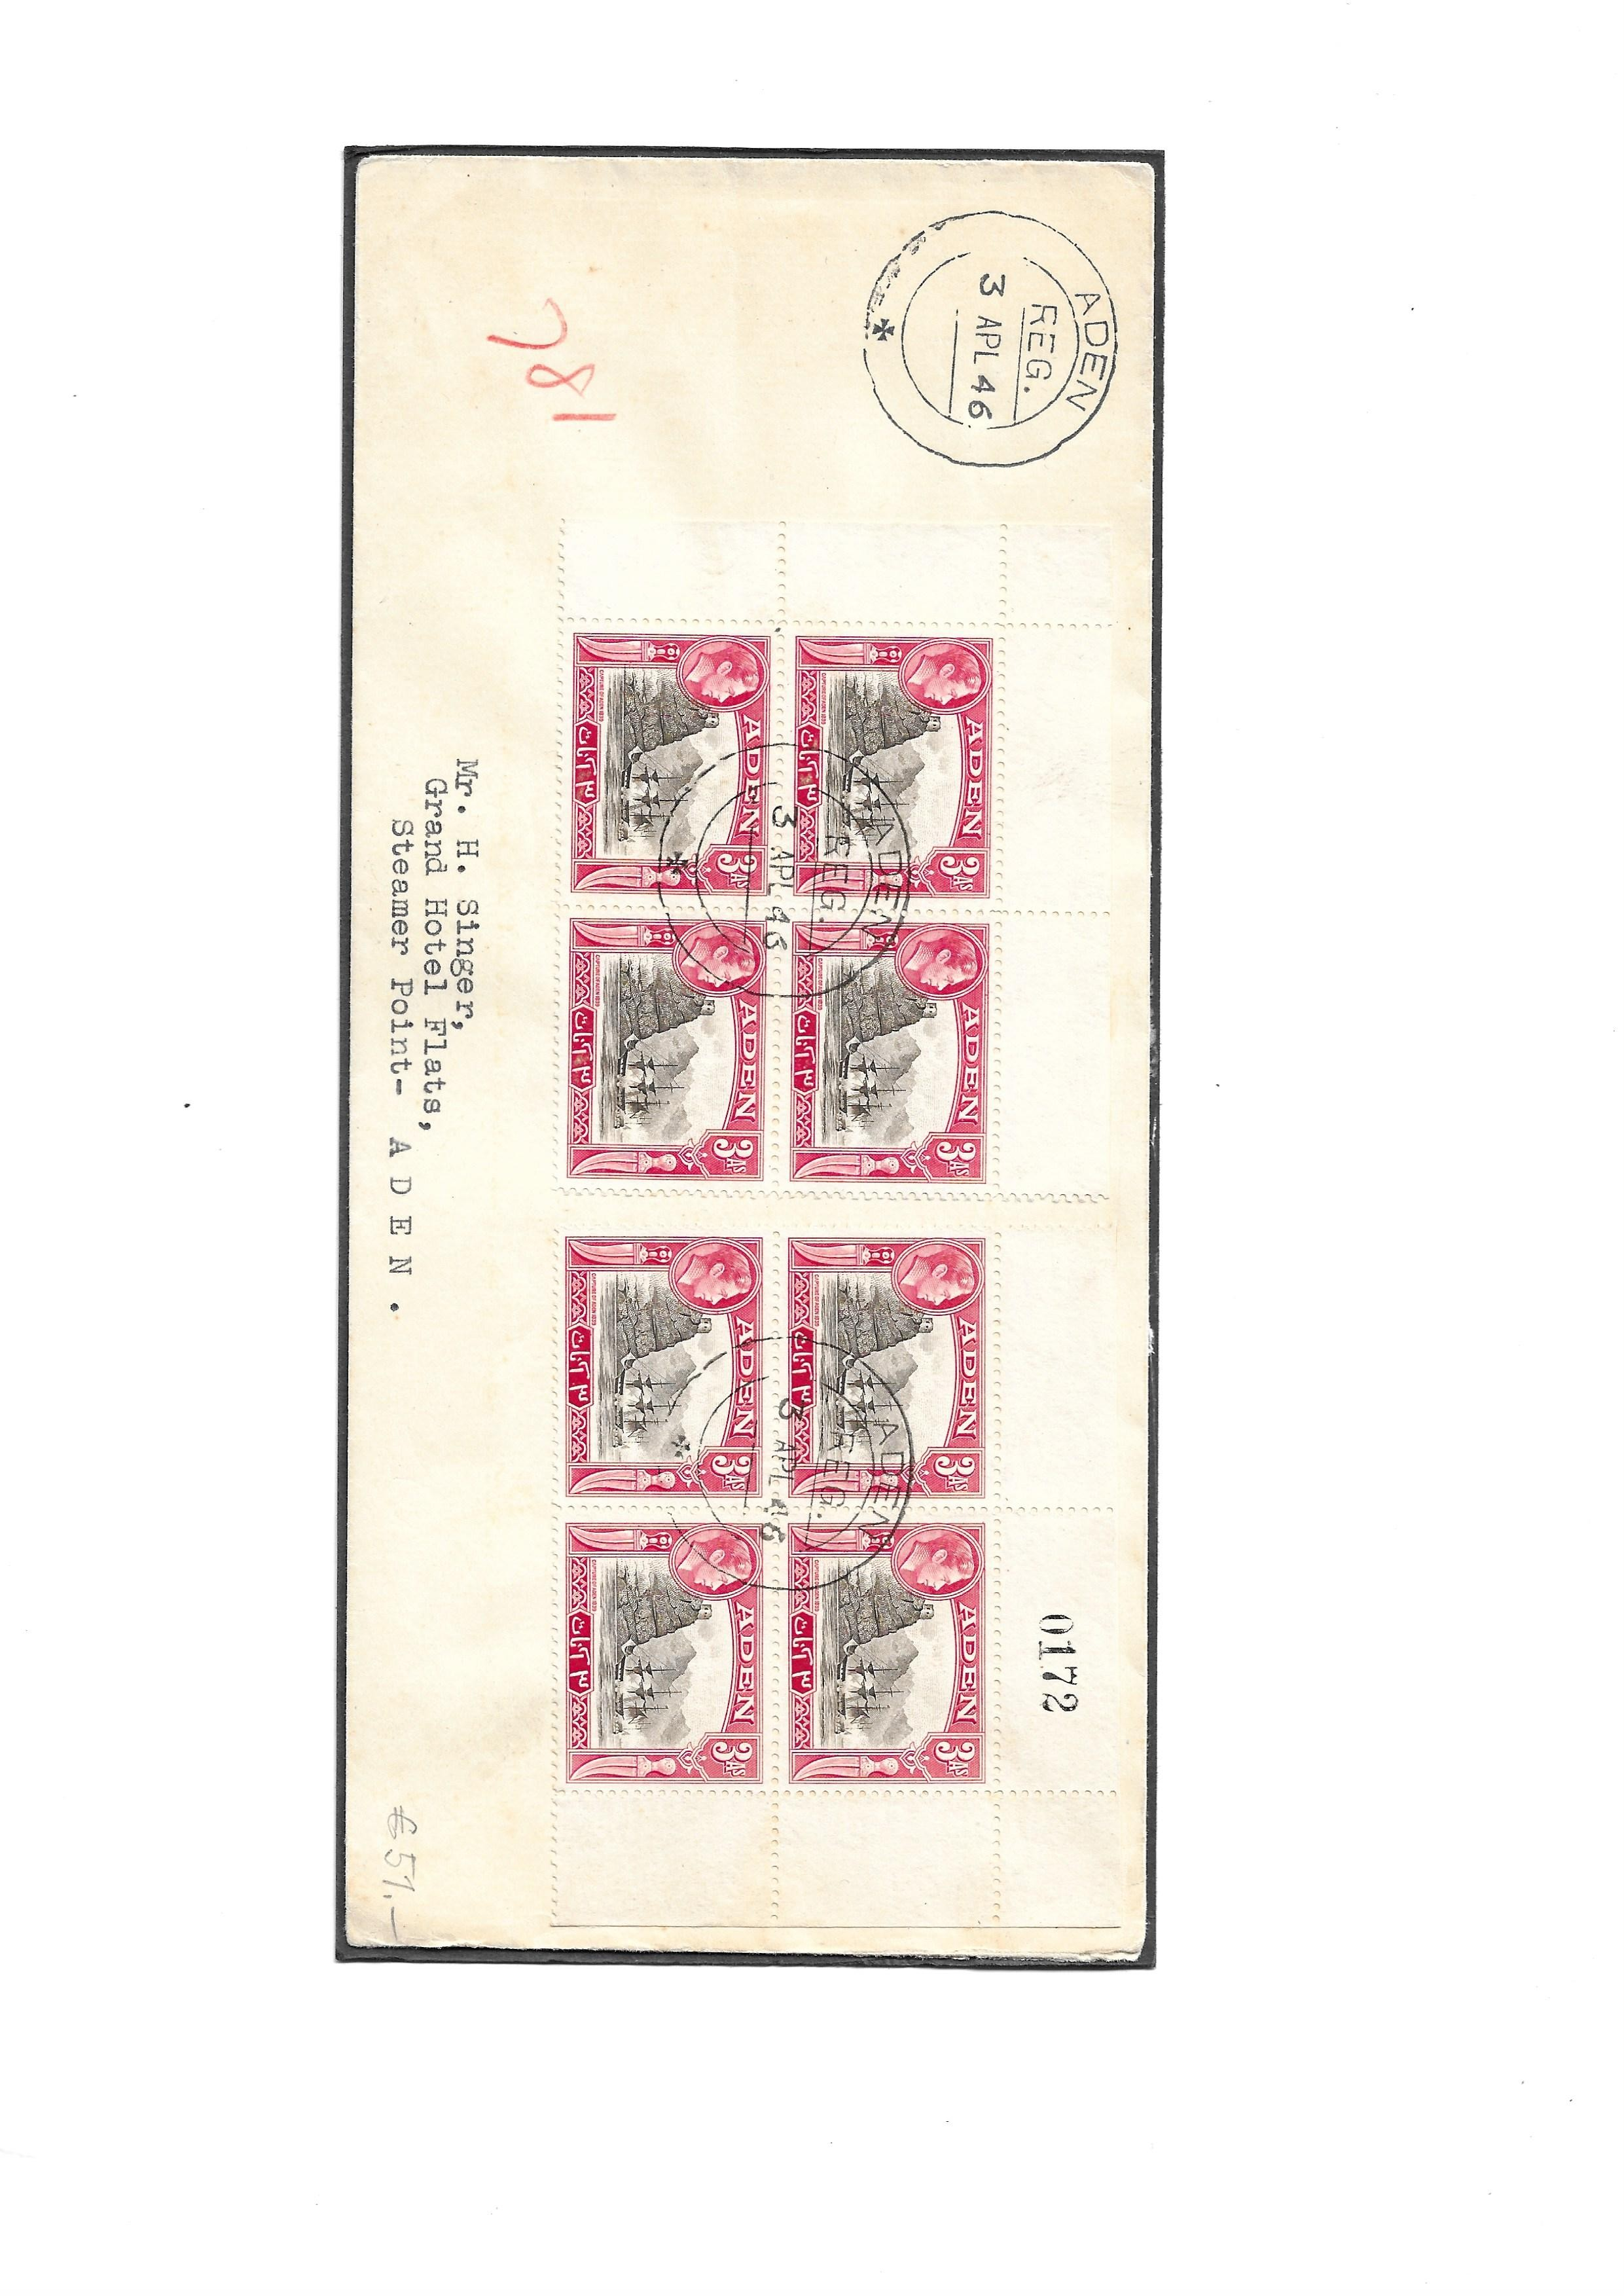 British Commonwealth Postal history selection of 12 attractive covers with Papua, Antiqua, Barbados, - Image 6 of 7